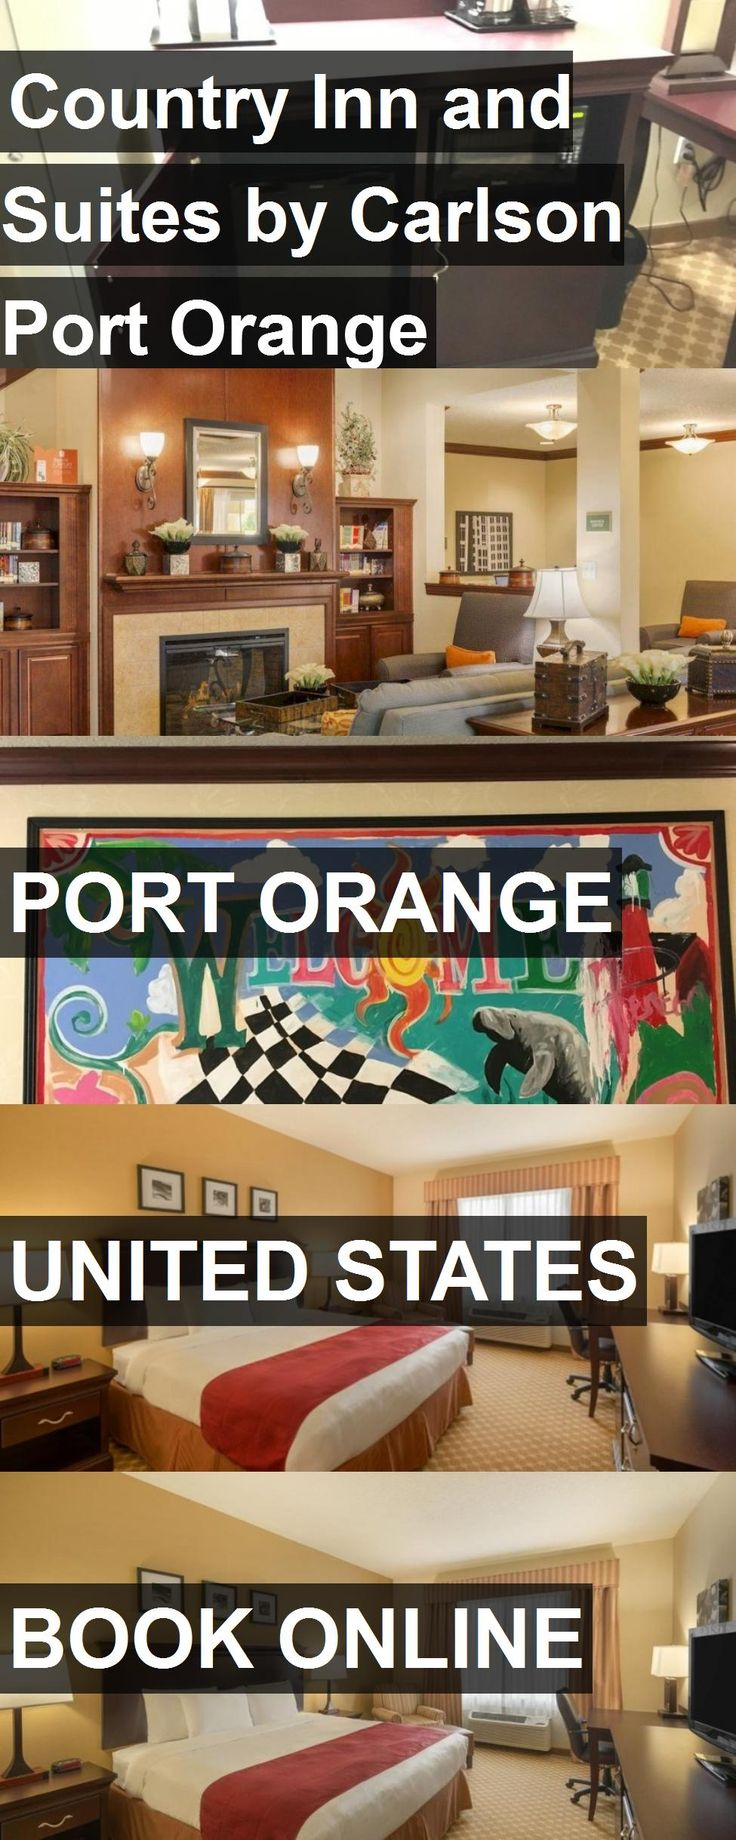 Hotel Country Inn and Suites by Carlson Port Orange in Port Orange, United States. For more information, photos, reviews and best prices please follow the link. #UnitedStates #PortOrange #travel #vacation #hotel